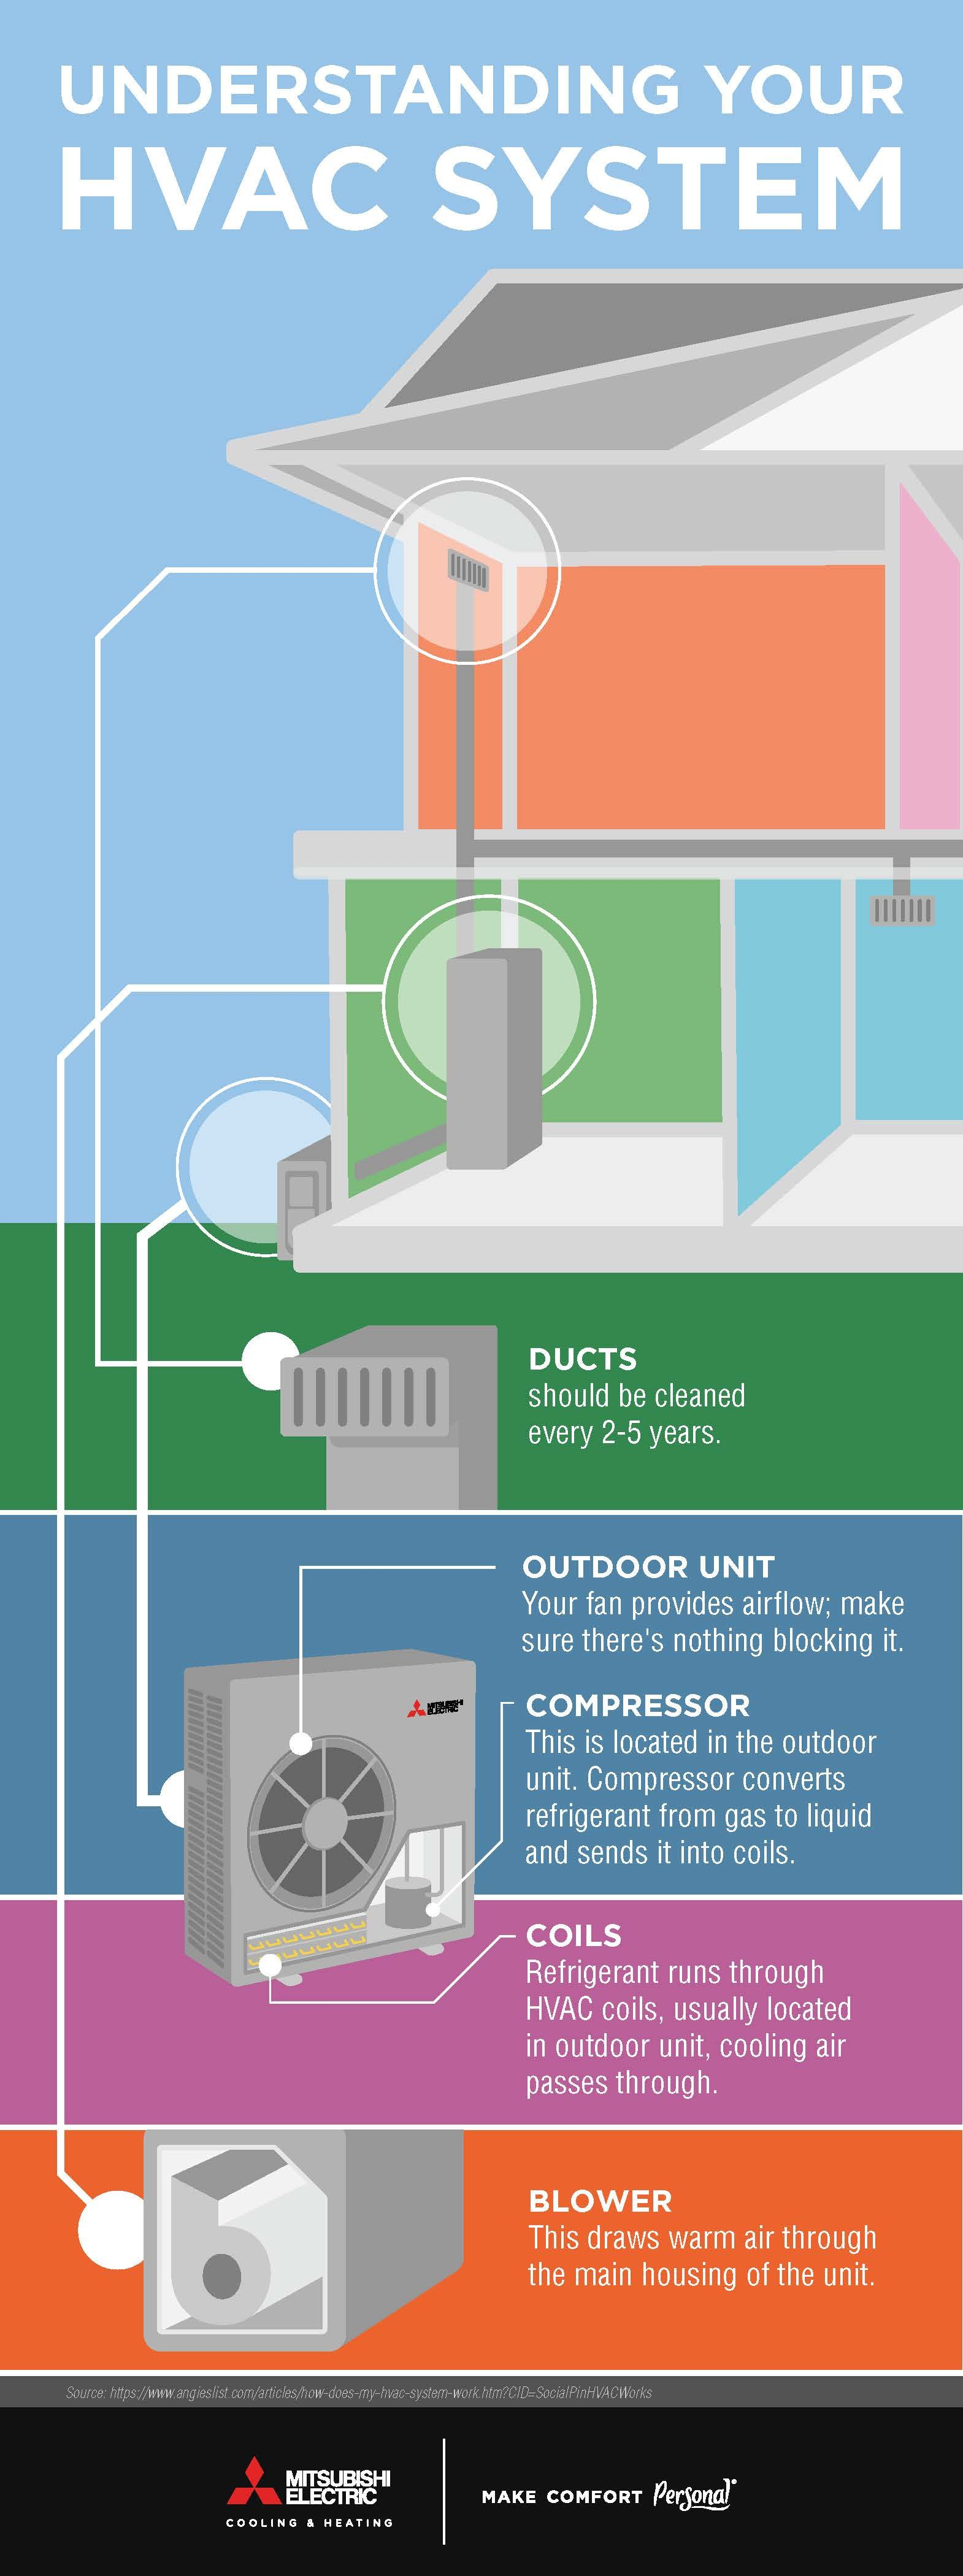 hight resolution of understanding your hvac system will help you decide what system works for your home and will better prepare you to talk with a contractor